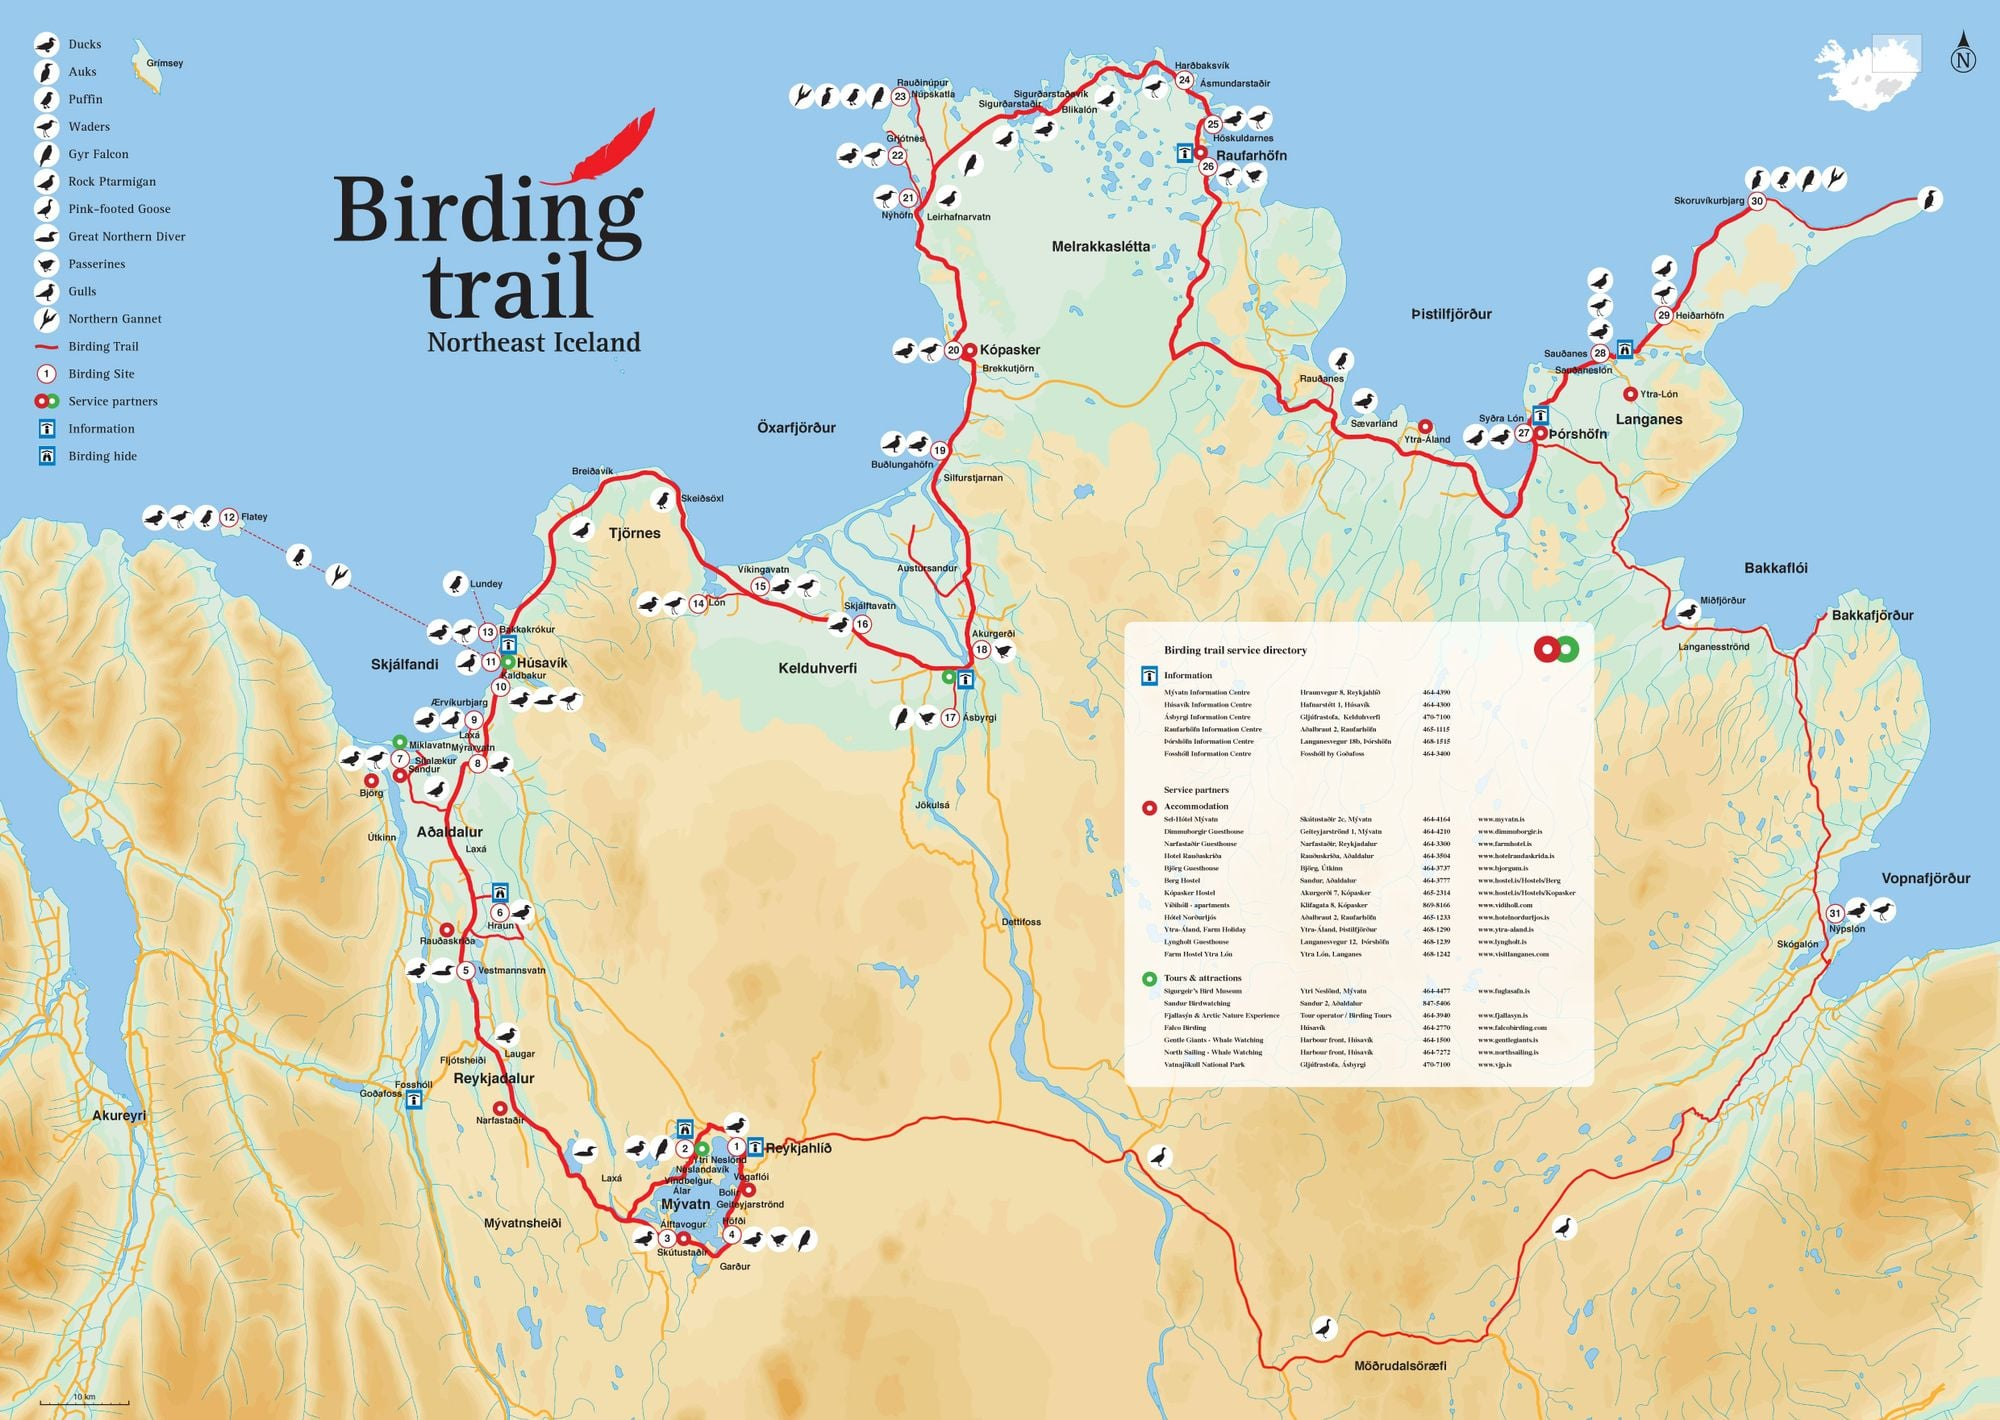 View the Birding Trail map for North East Iceland